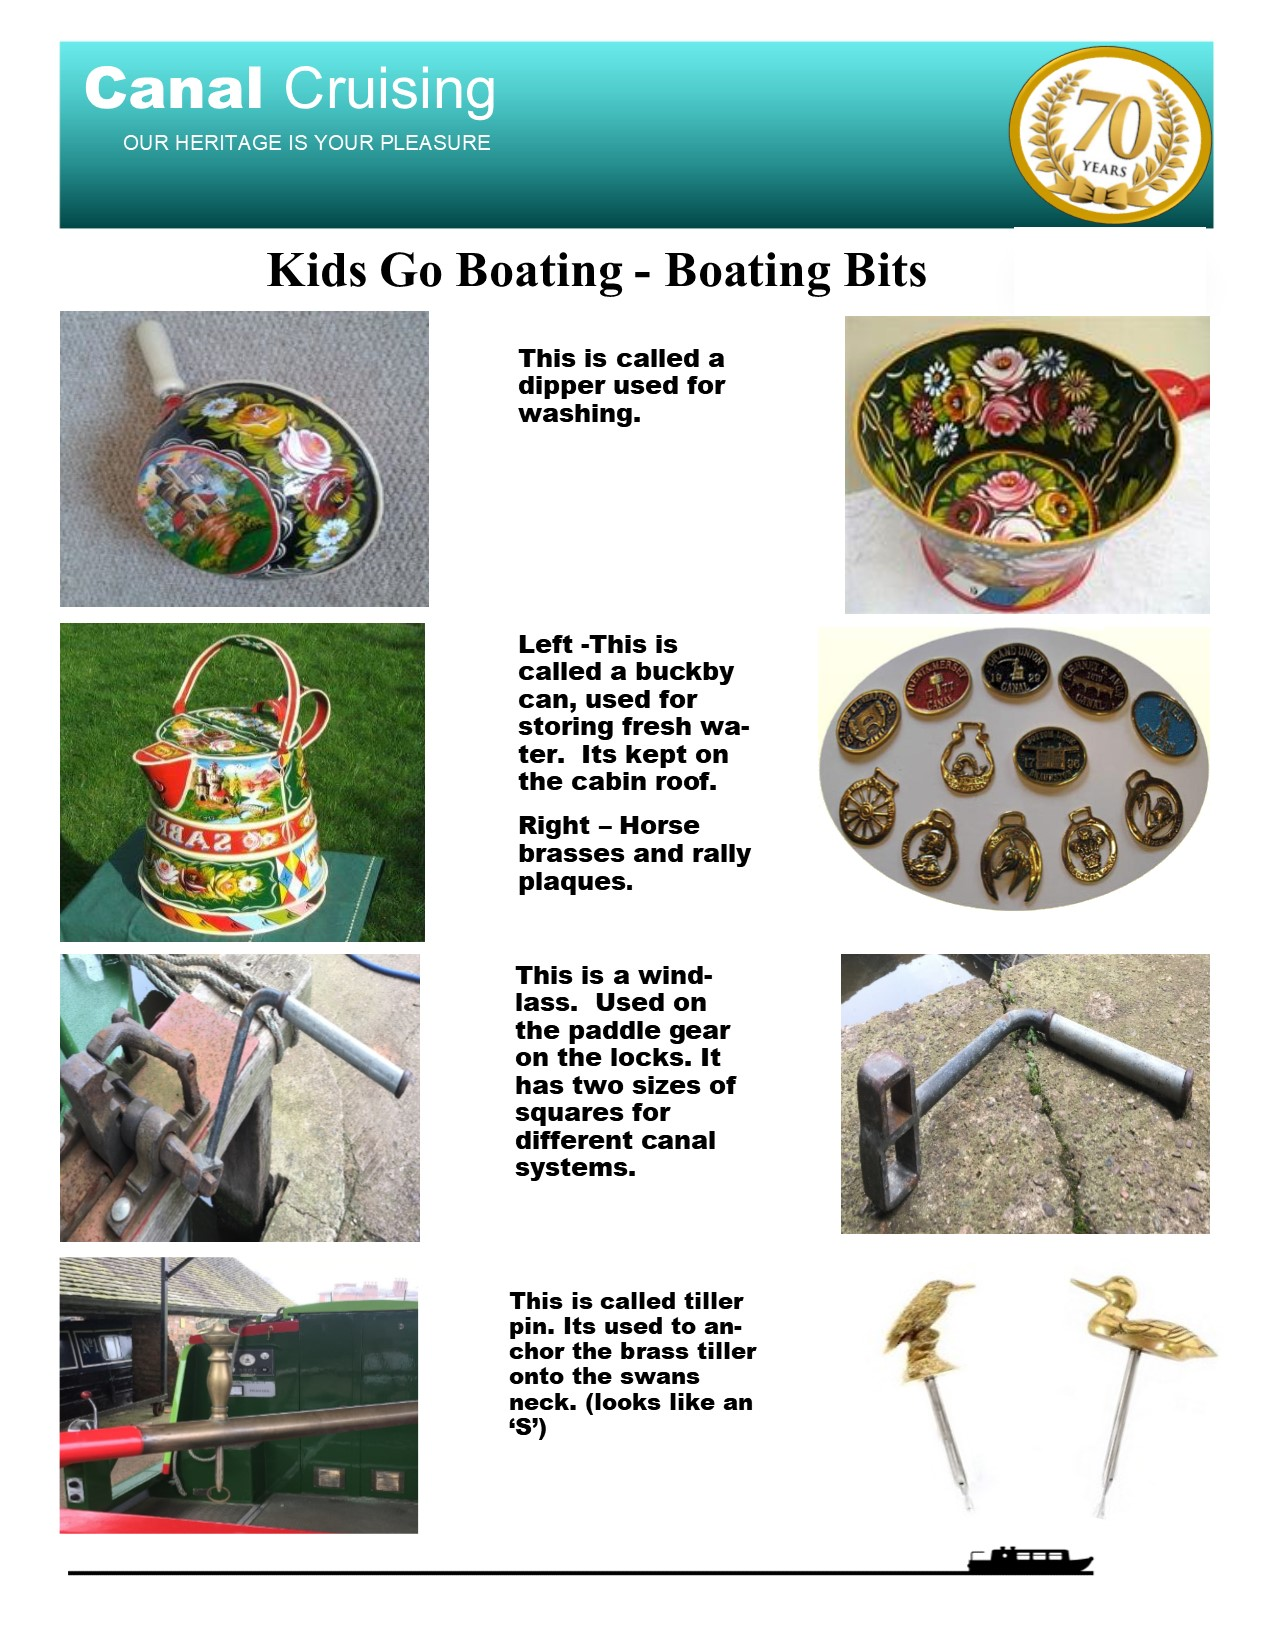 Kids go boating boating bits